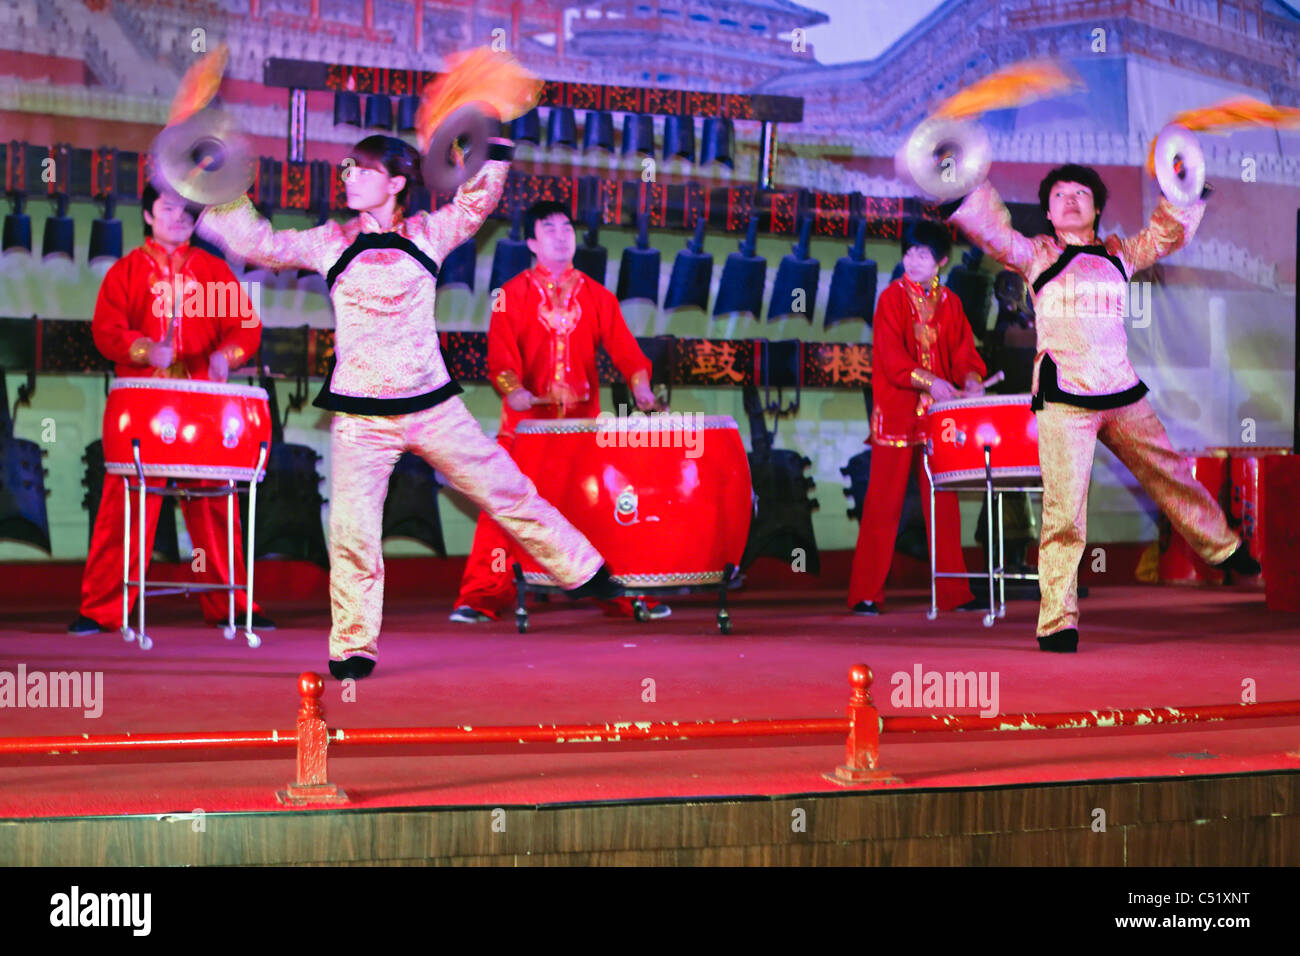 Drumming Show in the Drum Tower, Xian City, Shaanxi, China - Stock Image